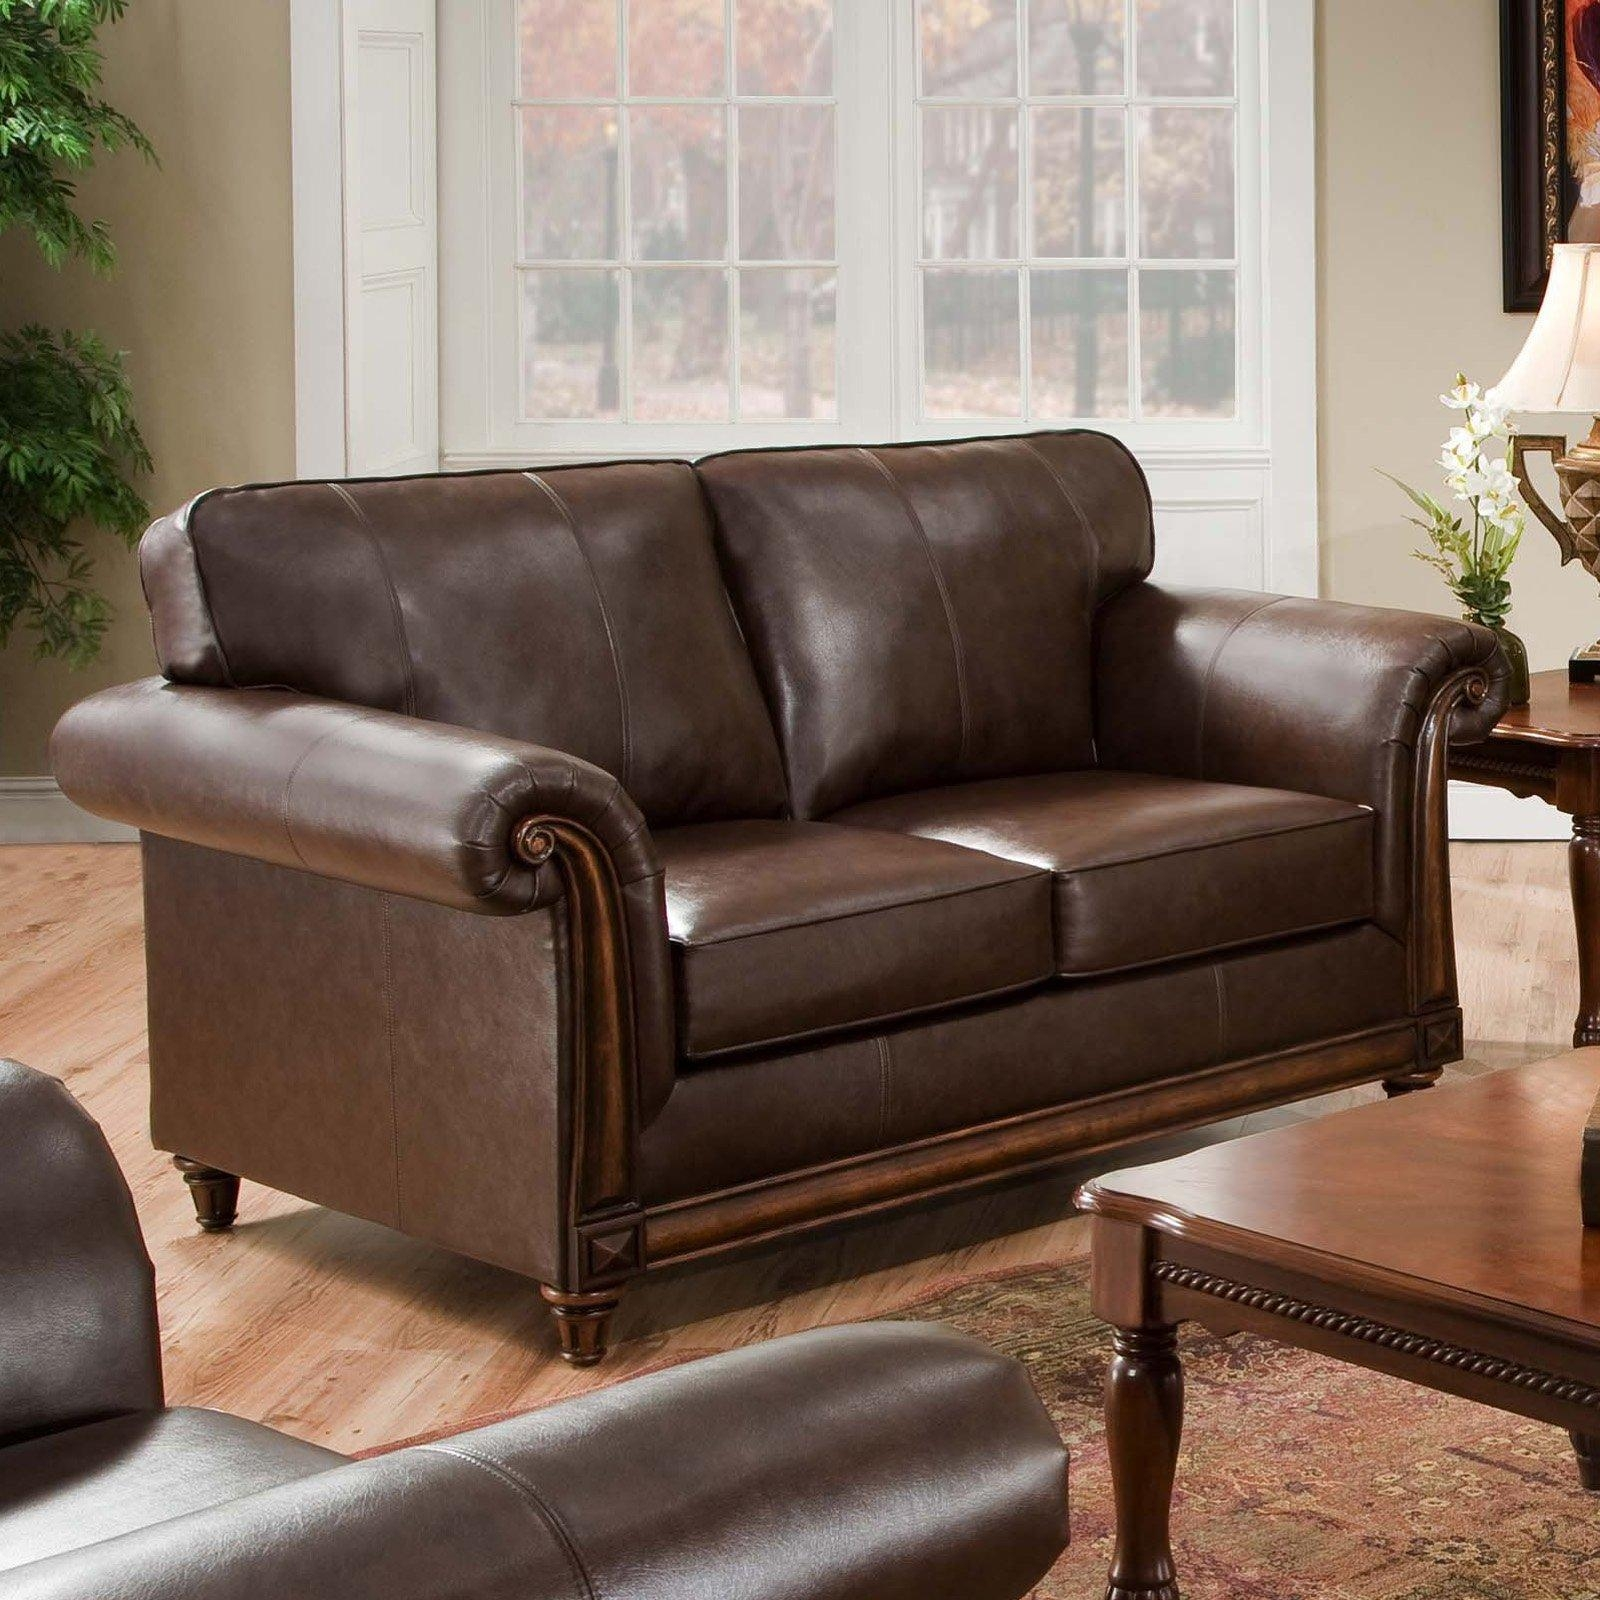 Simmons San Diego Coffee Leather Sofa | Hayneedle Intended For Simmons Leather Sofas (Image 11 of 20)